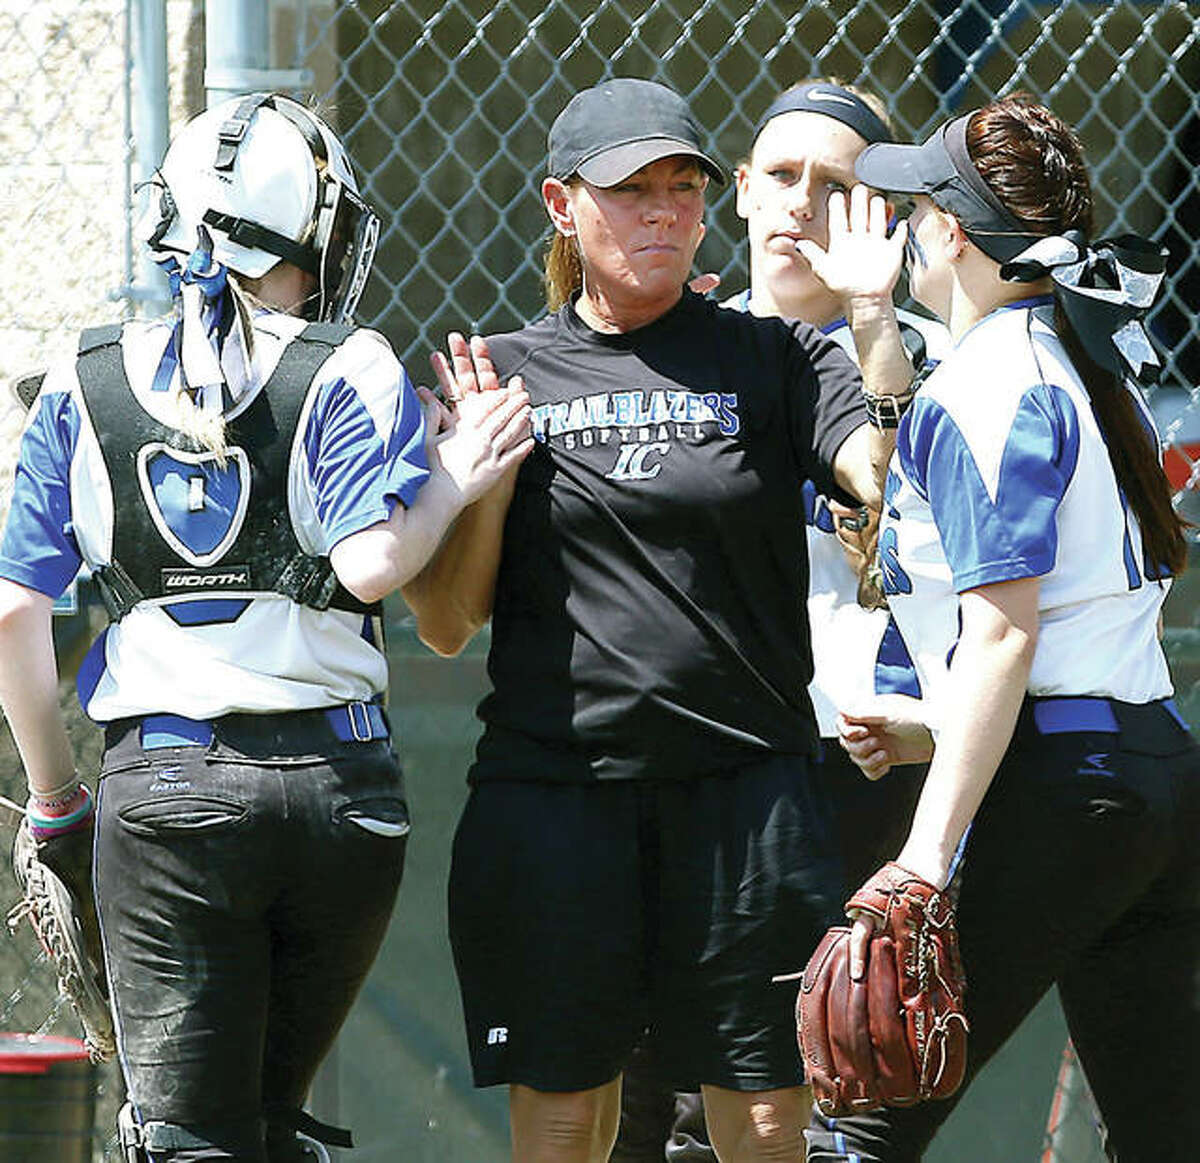 LCCC head coach Ronda Roberts' team is 4-11 heading into Sunday's scheduled doubleheader against Spoon River.